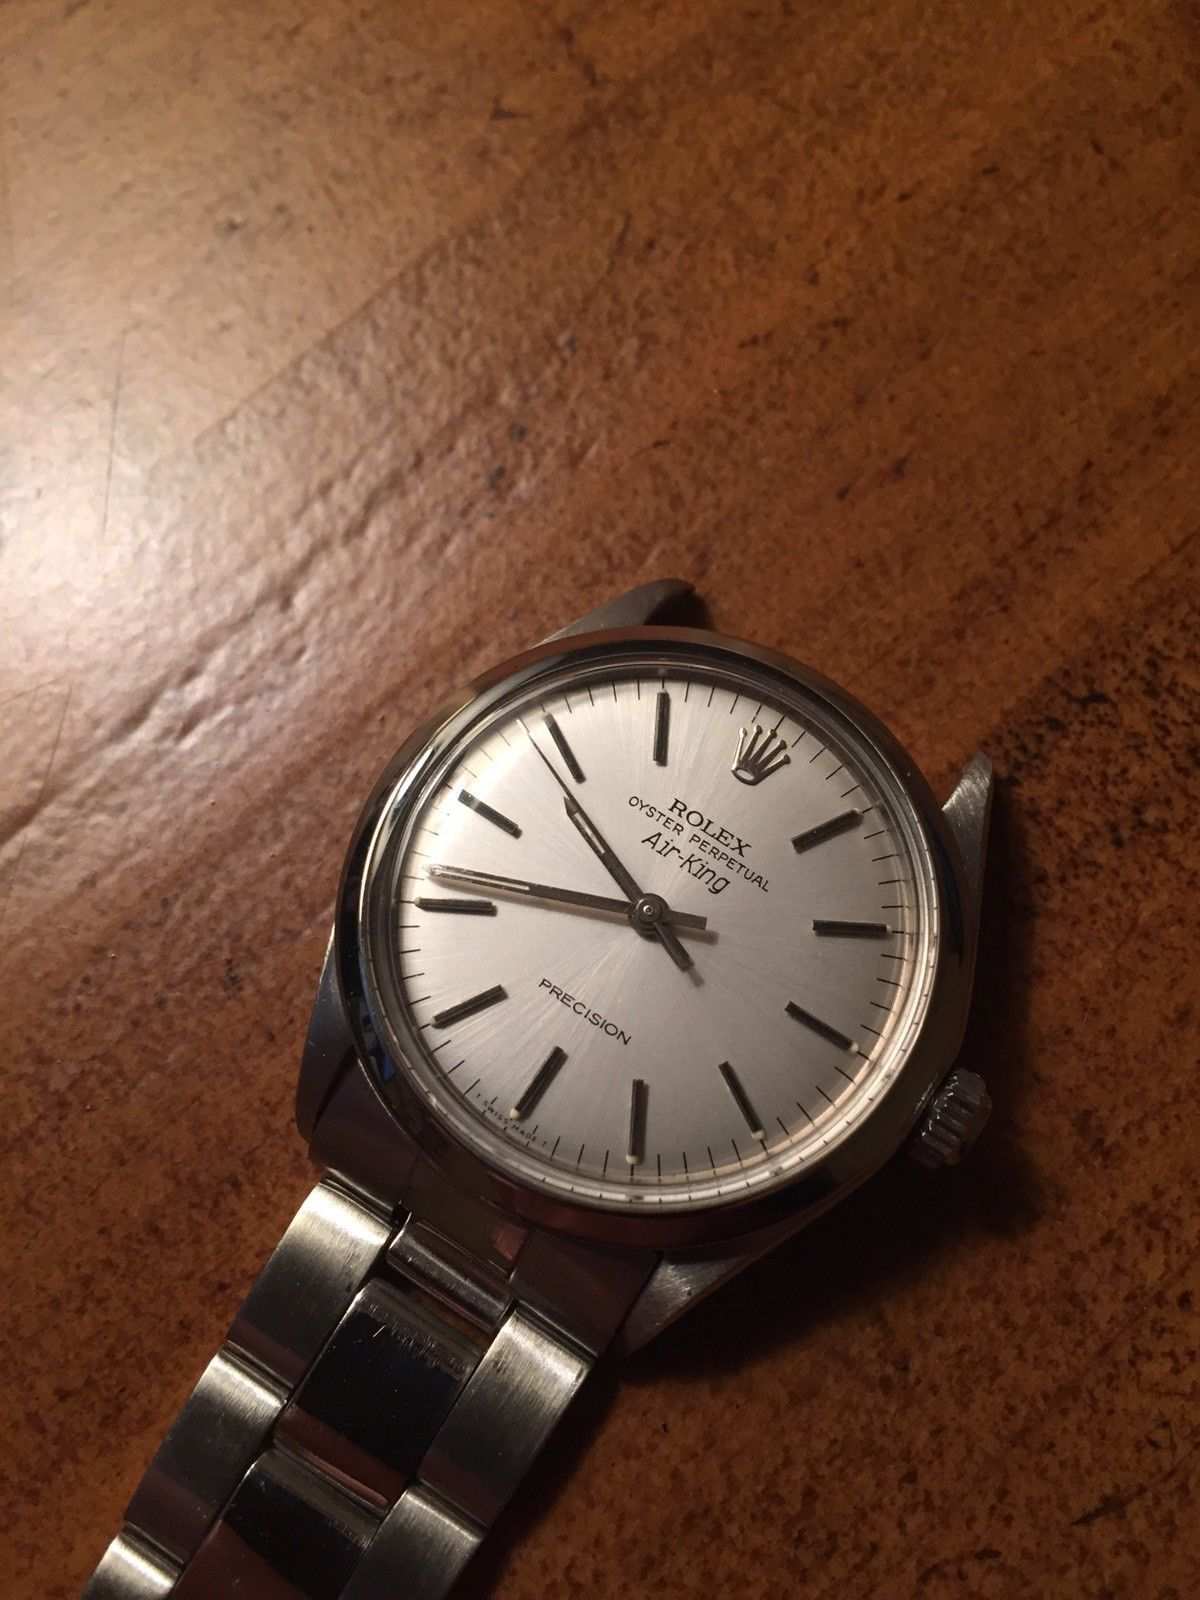 Forsale Vintage Rolex Oyster Perpetual Air King Ref5500